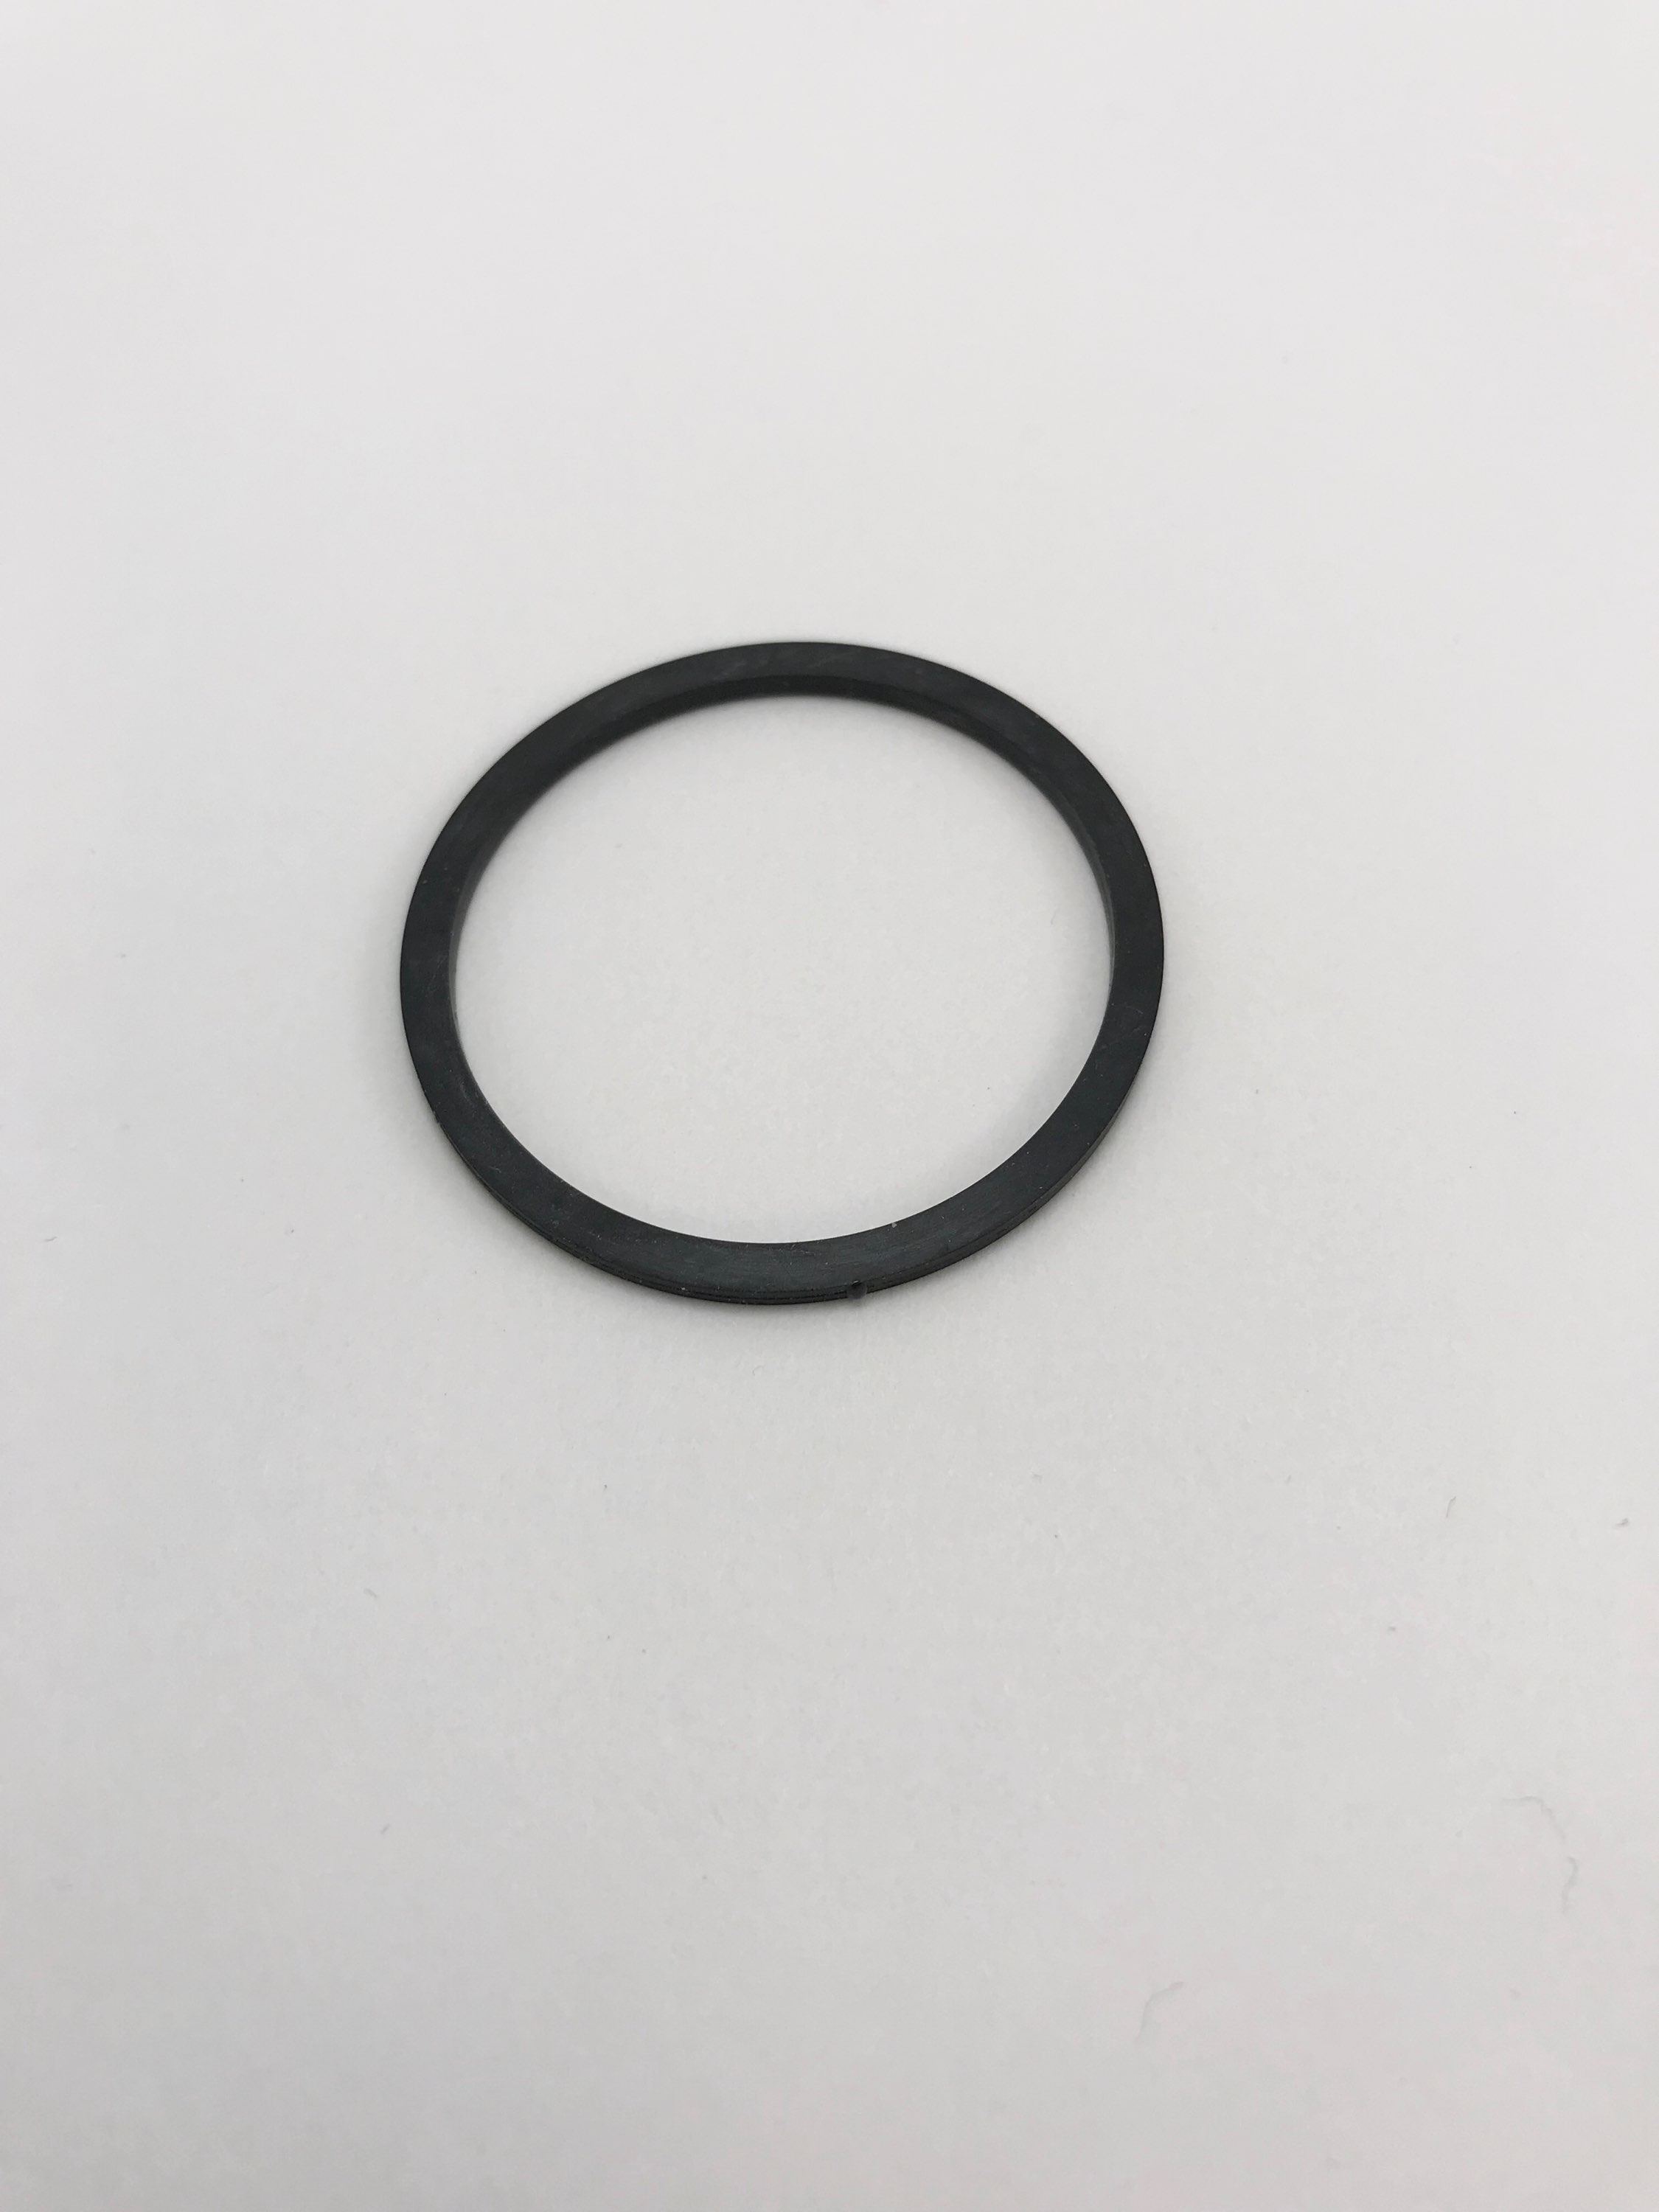 204468 TUTCO SUREHEAT Hot Air Heater Serpentine II Gasket for 039739 or 029763